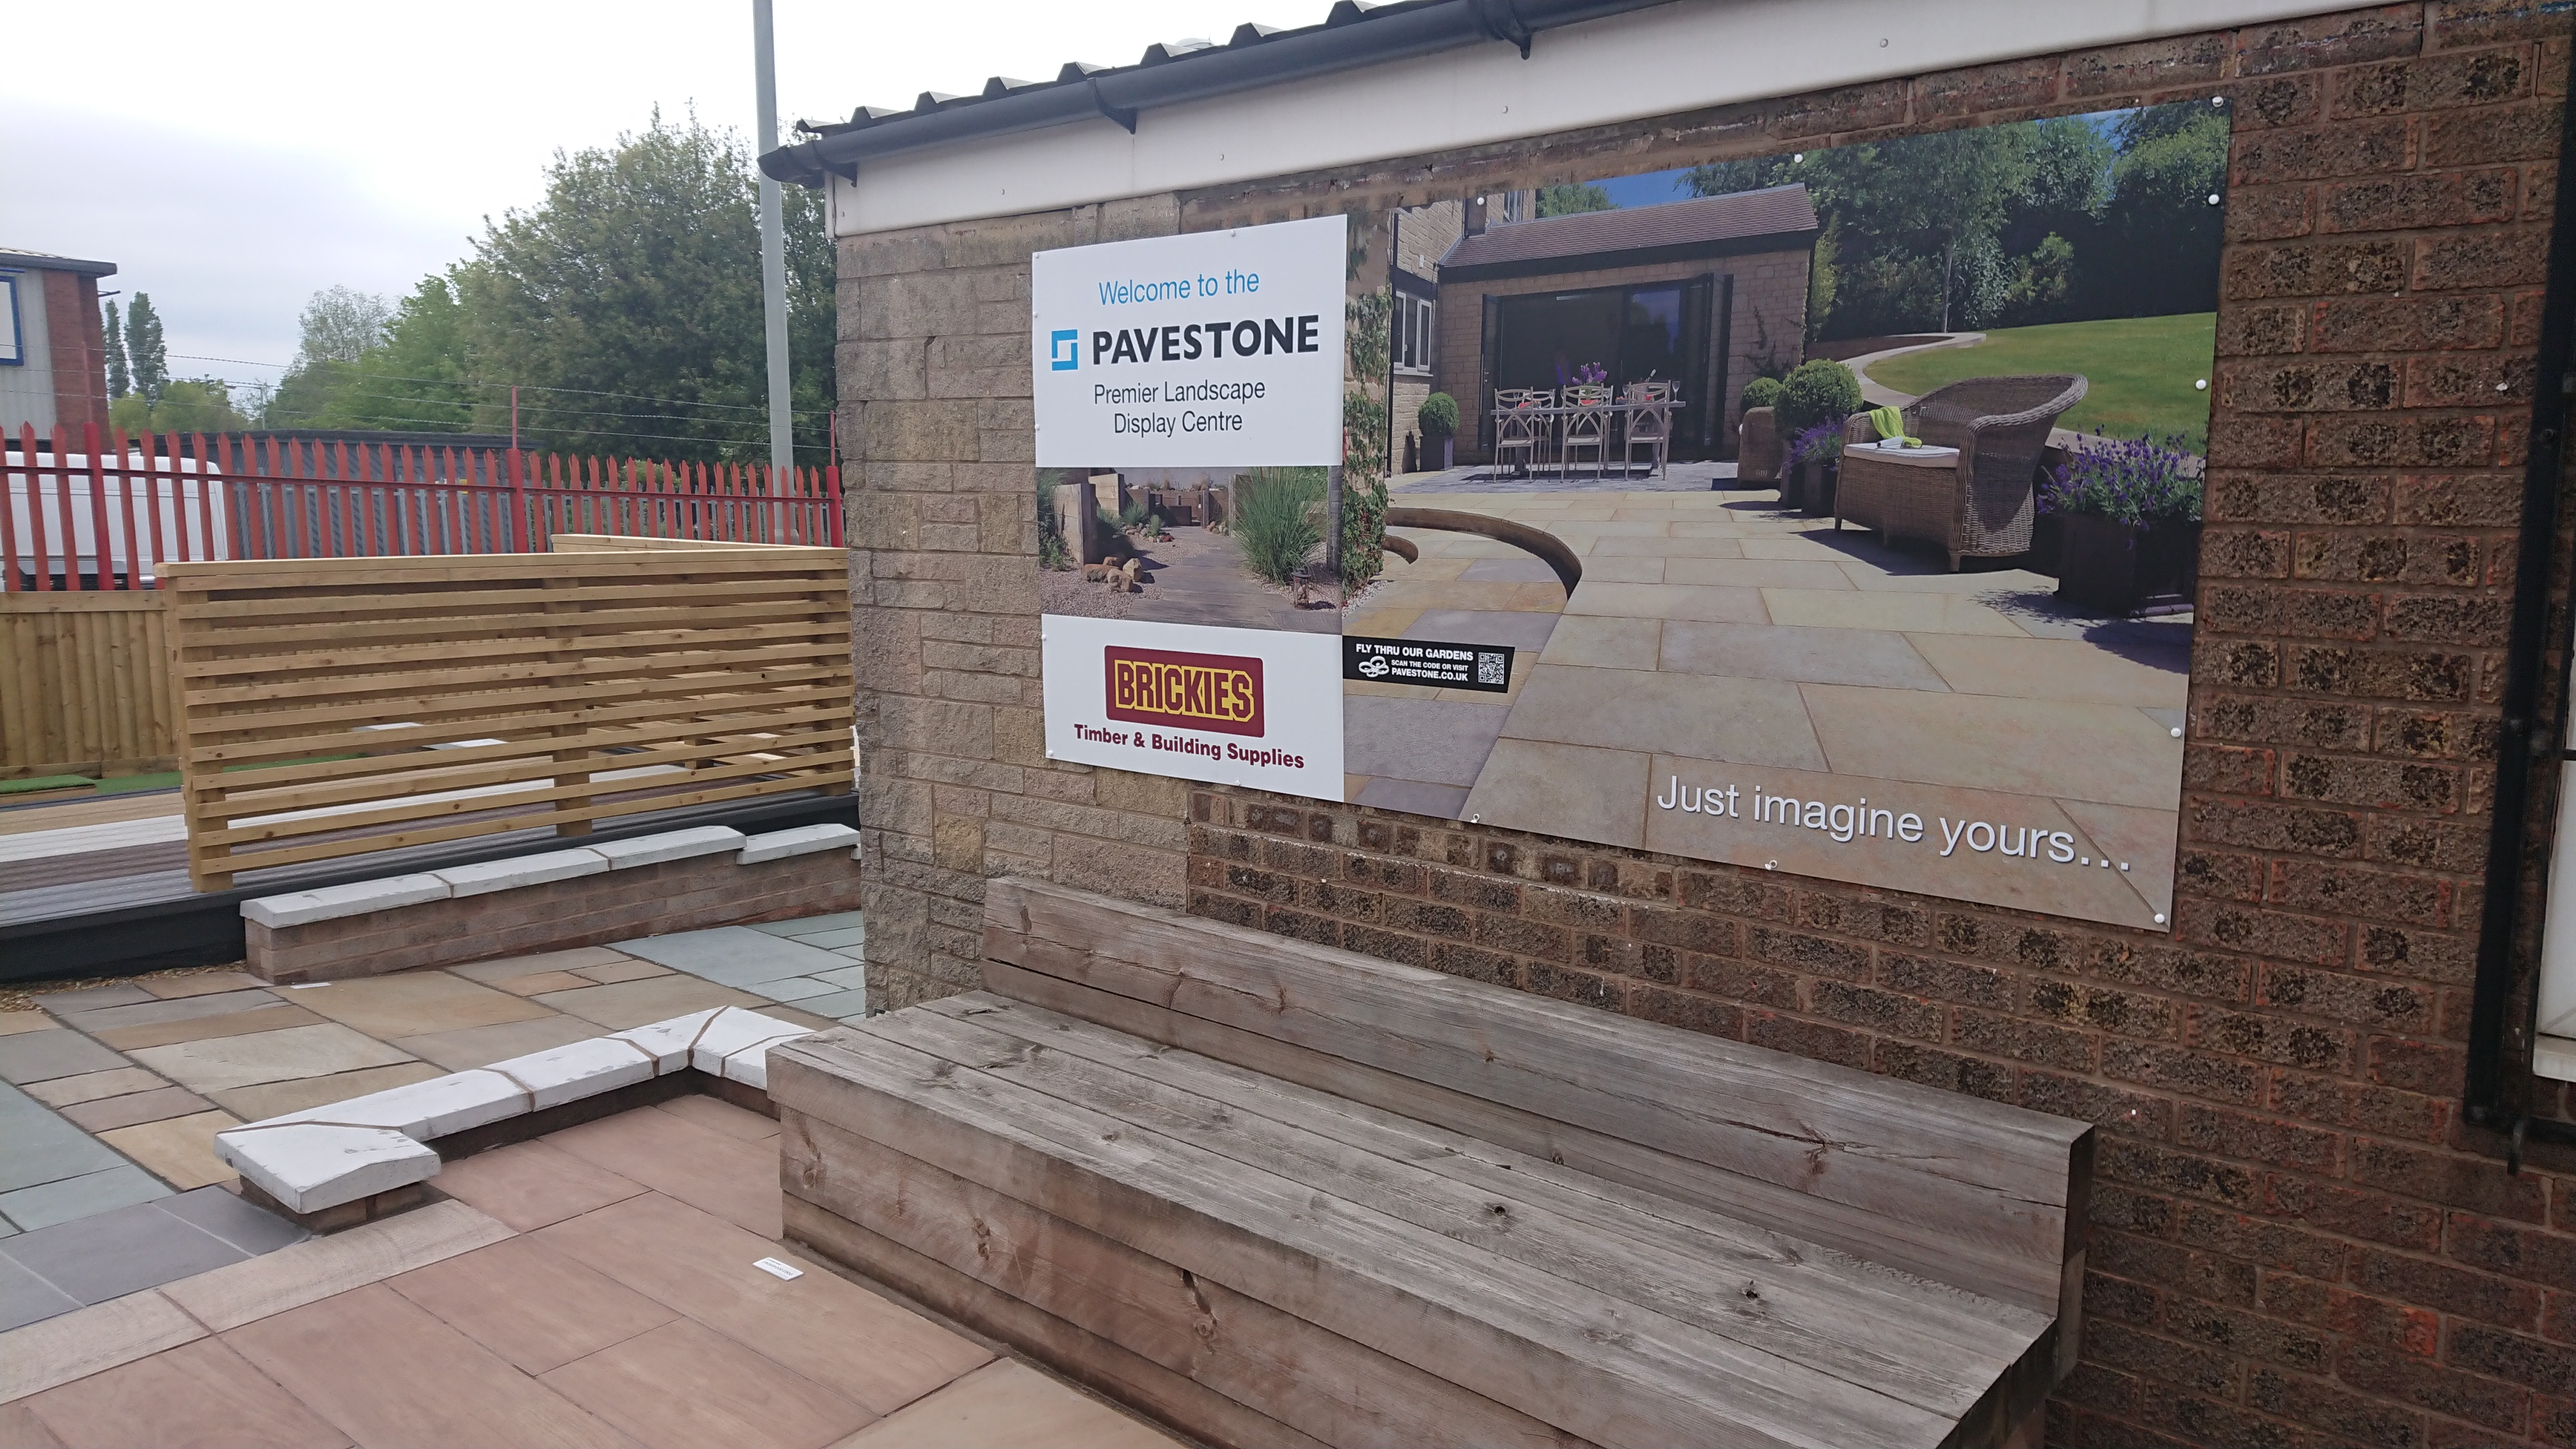 Come View Our Landscape Display Area, Brickies Timber & Building Supplies, Whitehill Industrial Estate, Stockport, SK4 1NS